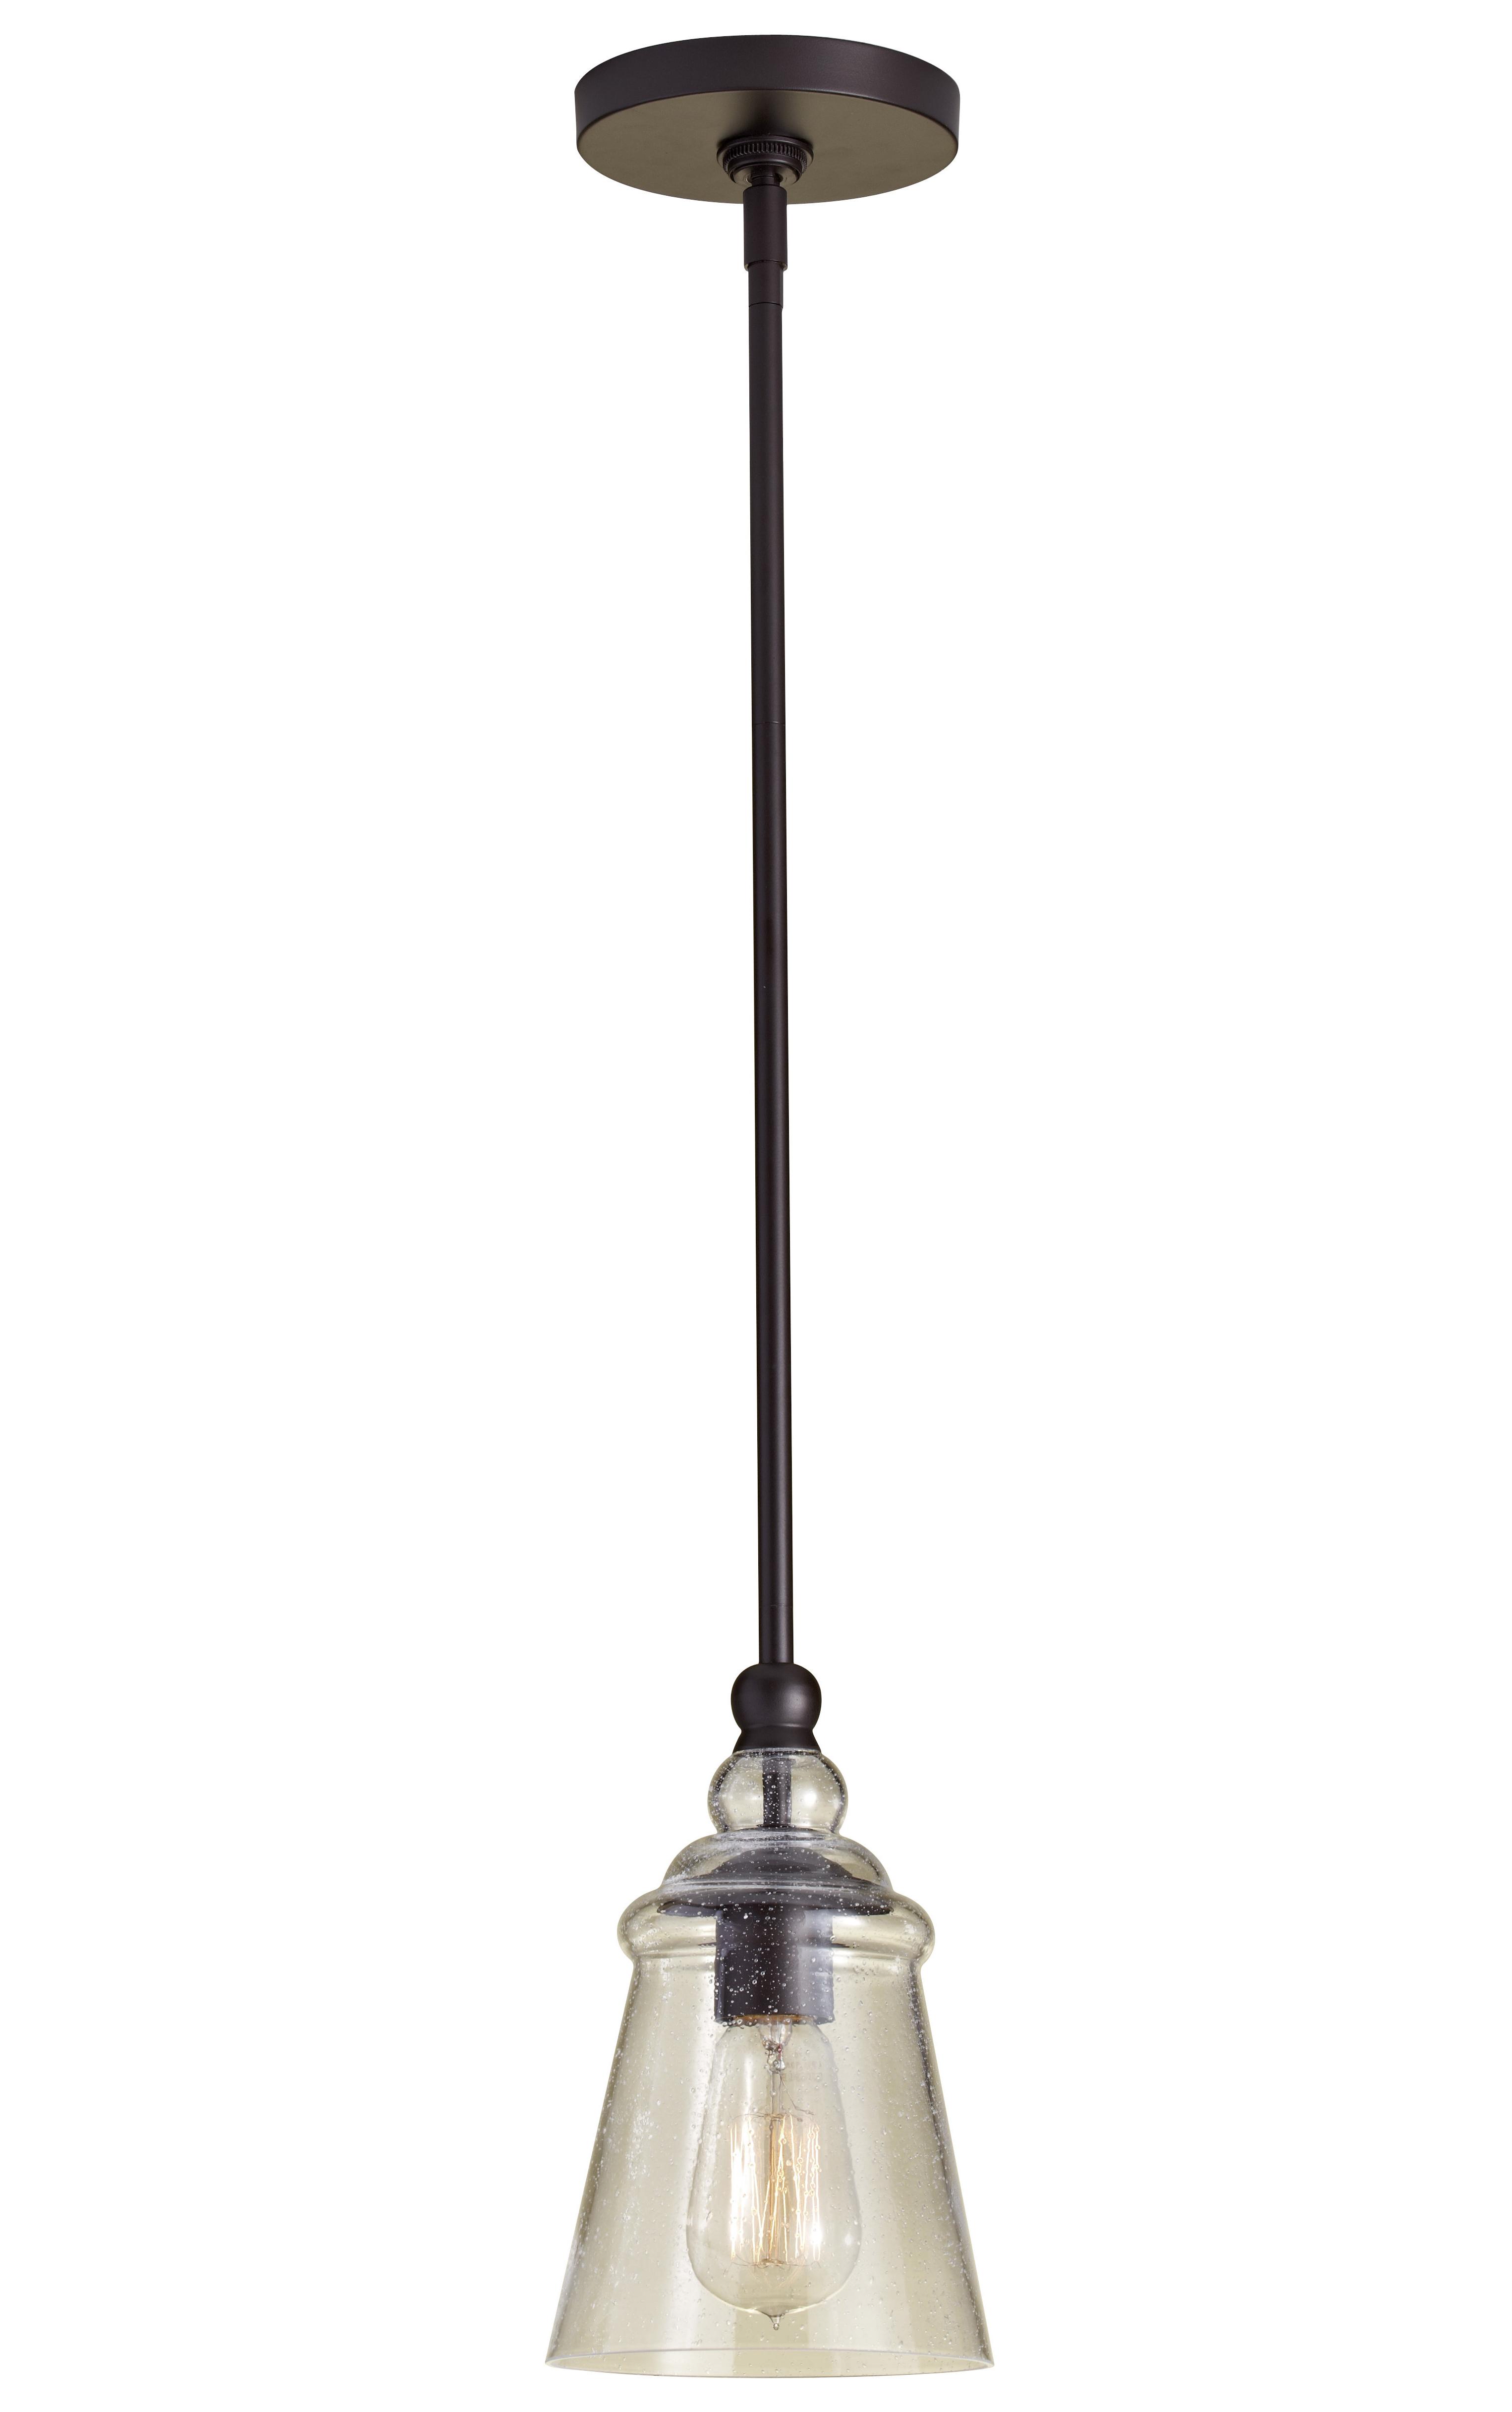 Sargent 1 Light Single Bell Pendant Intended For Most Recent Moyer 1 Light Single Cylinder Pendants (View 20 of 25)